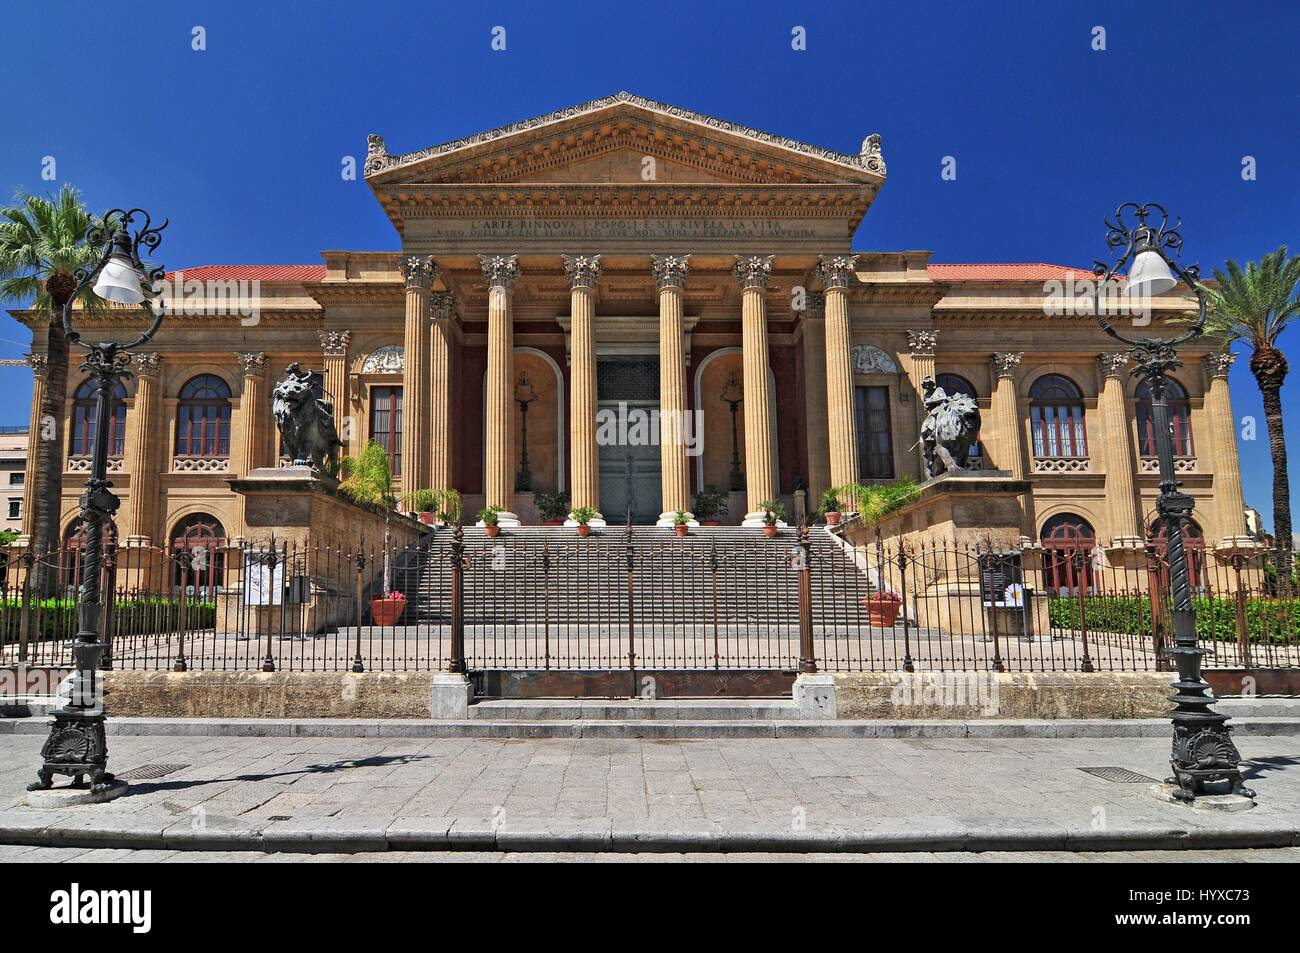 Teatro Massimo famous opera house on the Piazza Verdi in ...